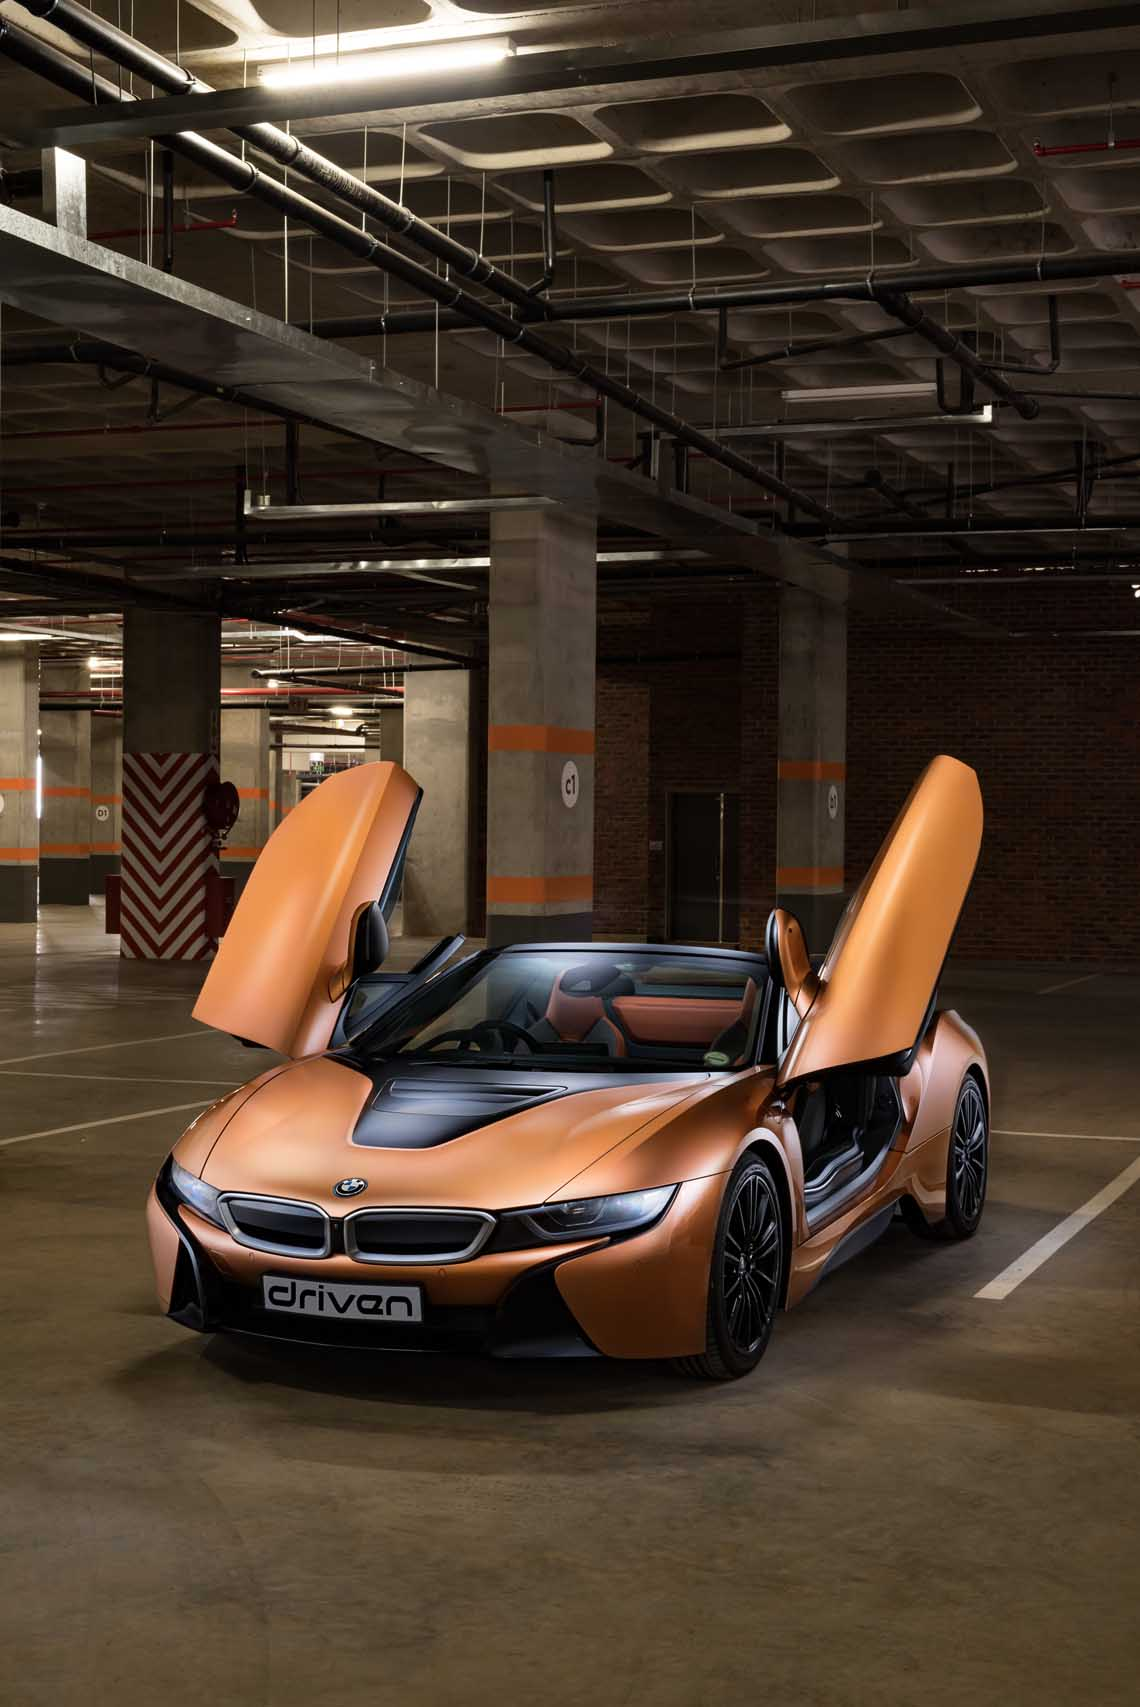 2018 Bmw I8 Roadster Hero Shot Showing The Doors Wheels And Side